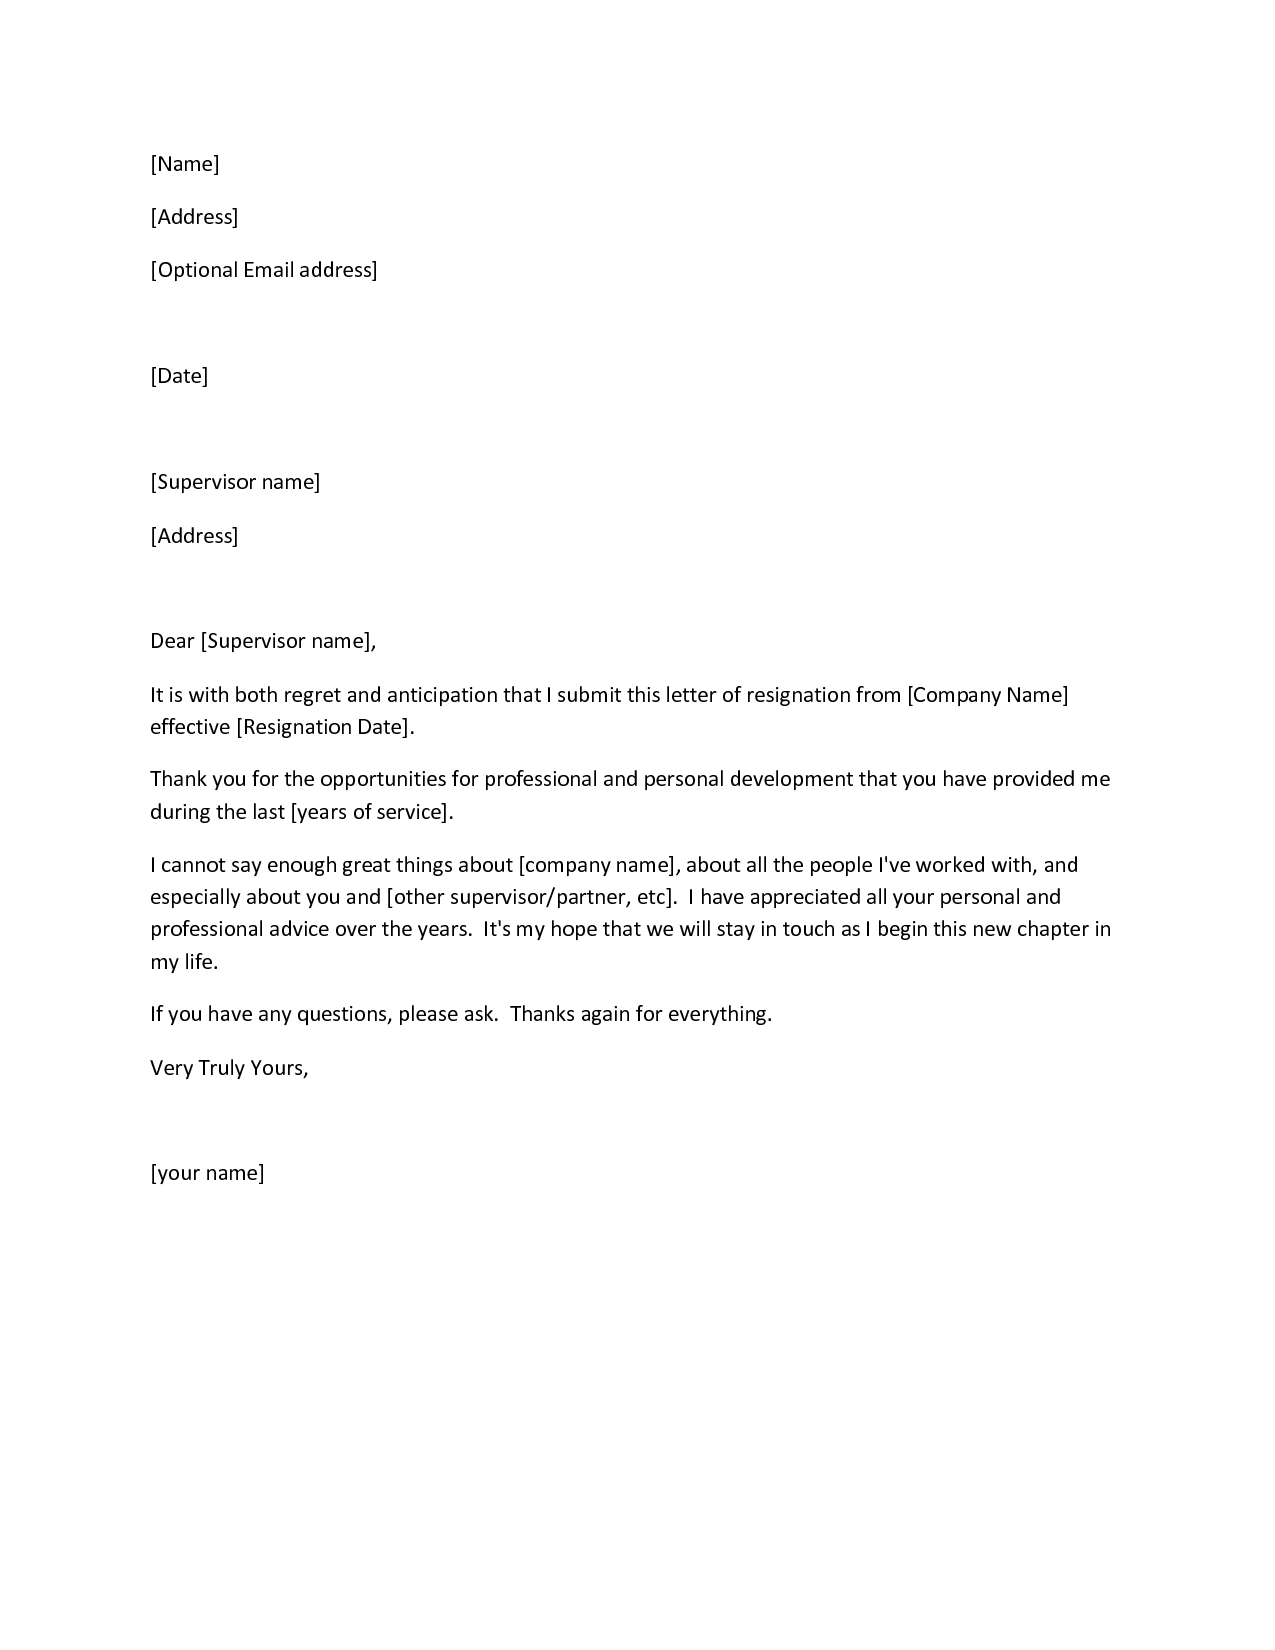 TwoWeek Resignation Letter Samples  Formal Resignation Letter